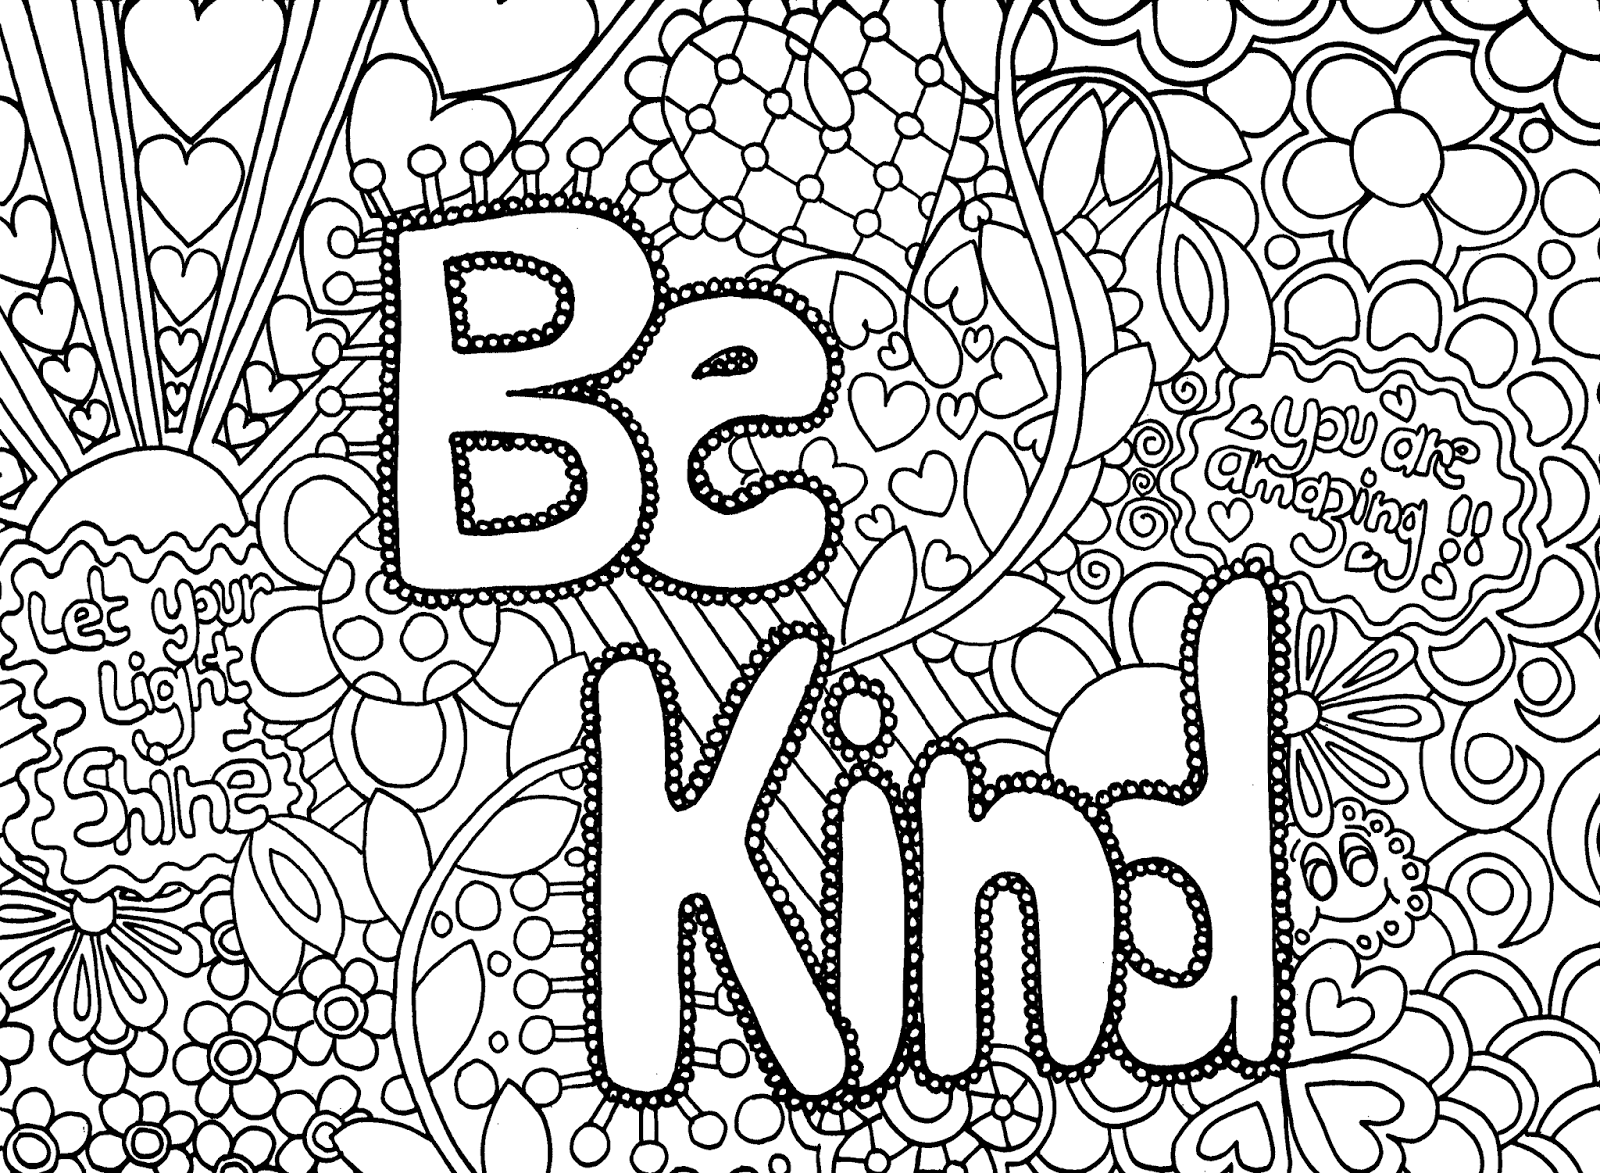 1600x1173 For Last Few Years Kid's Coloring Pages Printed